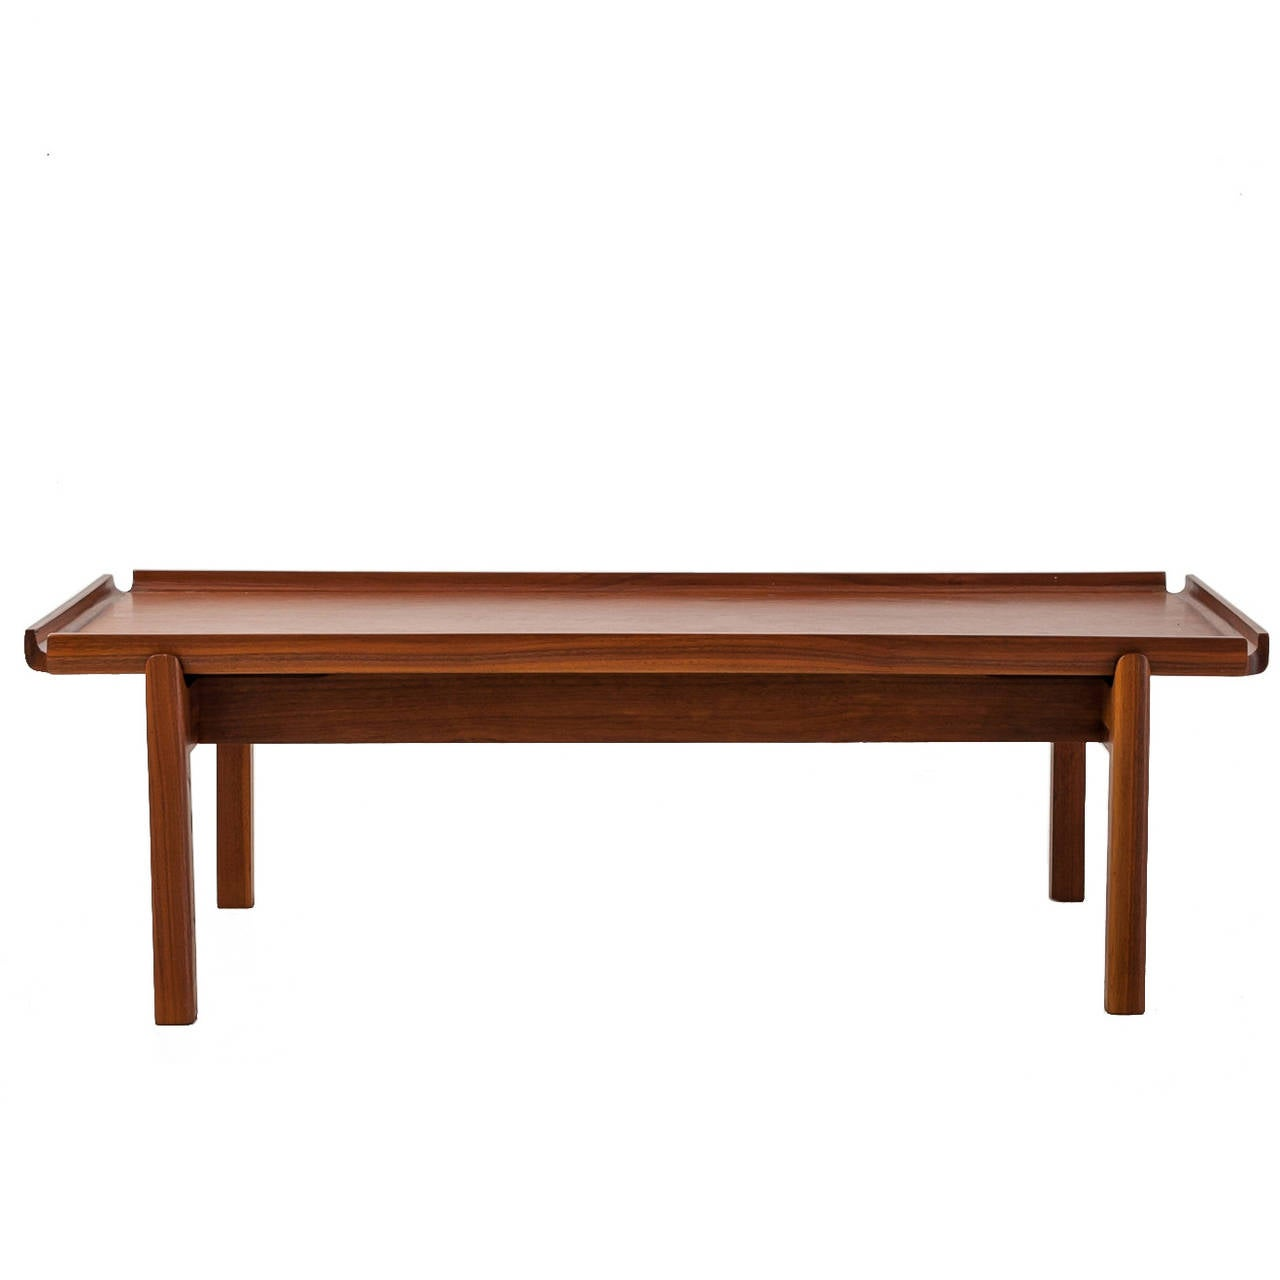 John kapel wooden coffee table with curved edges for sale at 1stdibs john kapel wooden coffee table with curved edges 1 geotapseo Images